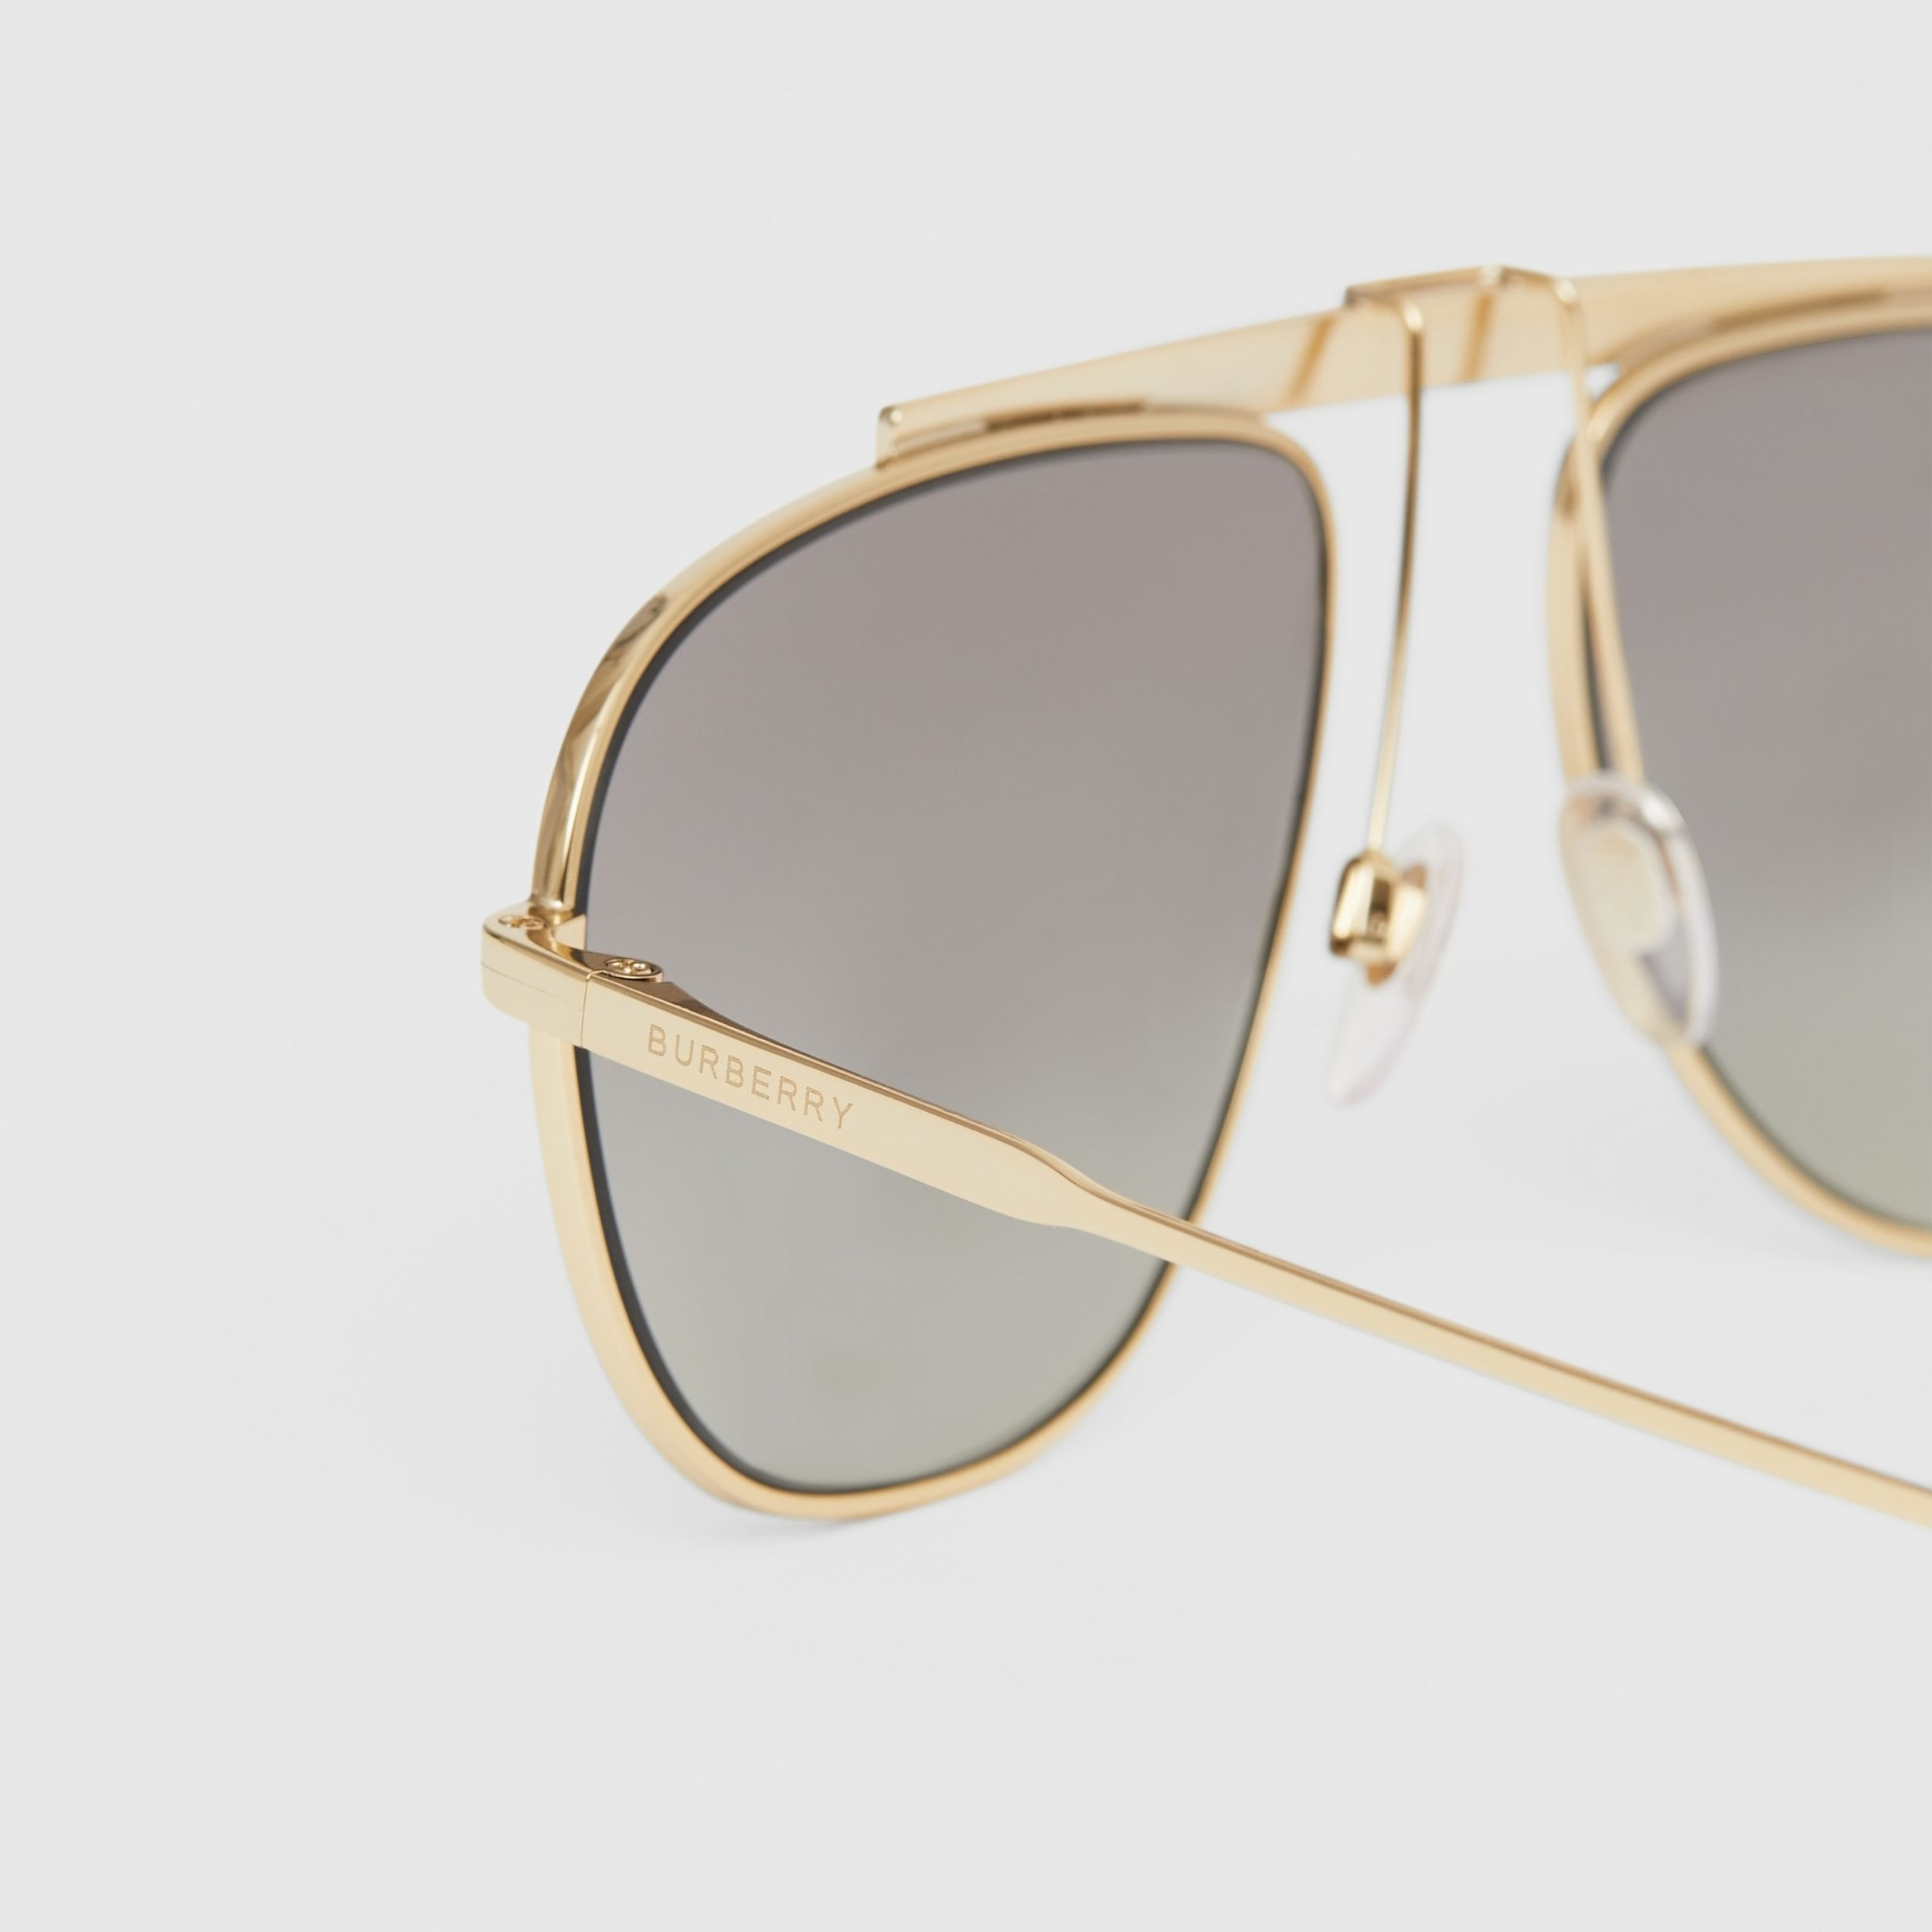 Icon Stripe Detail Pilot Sunglasses in Gold - Men | Burberry - 2